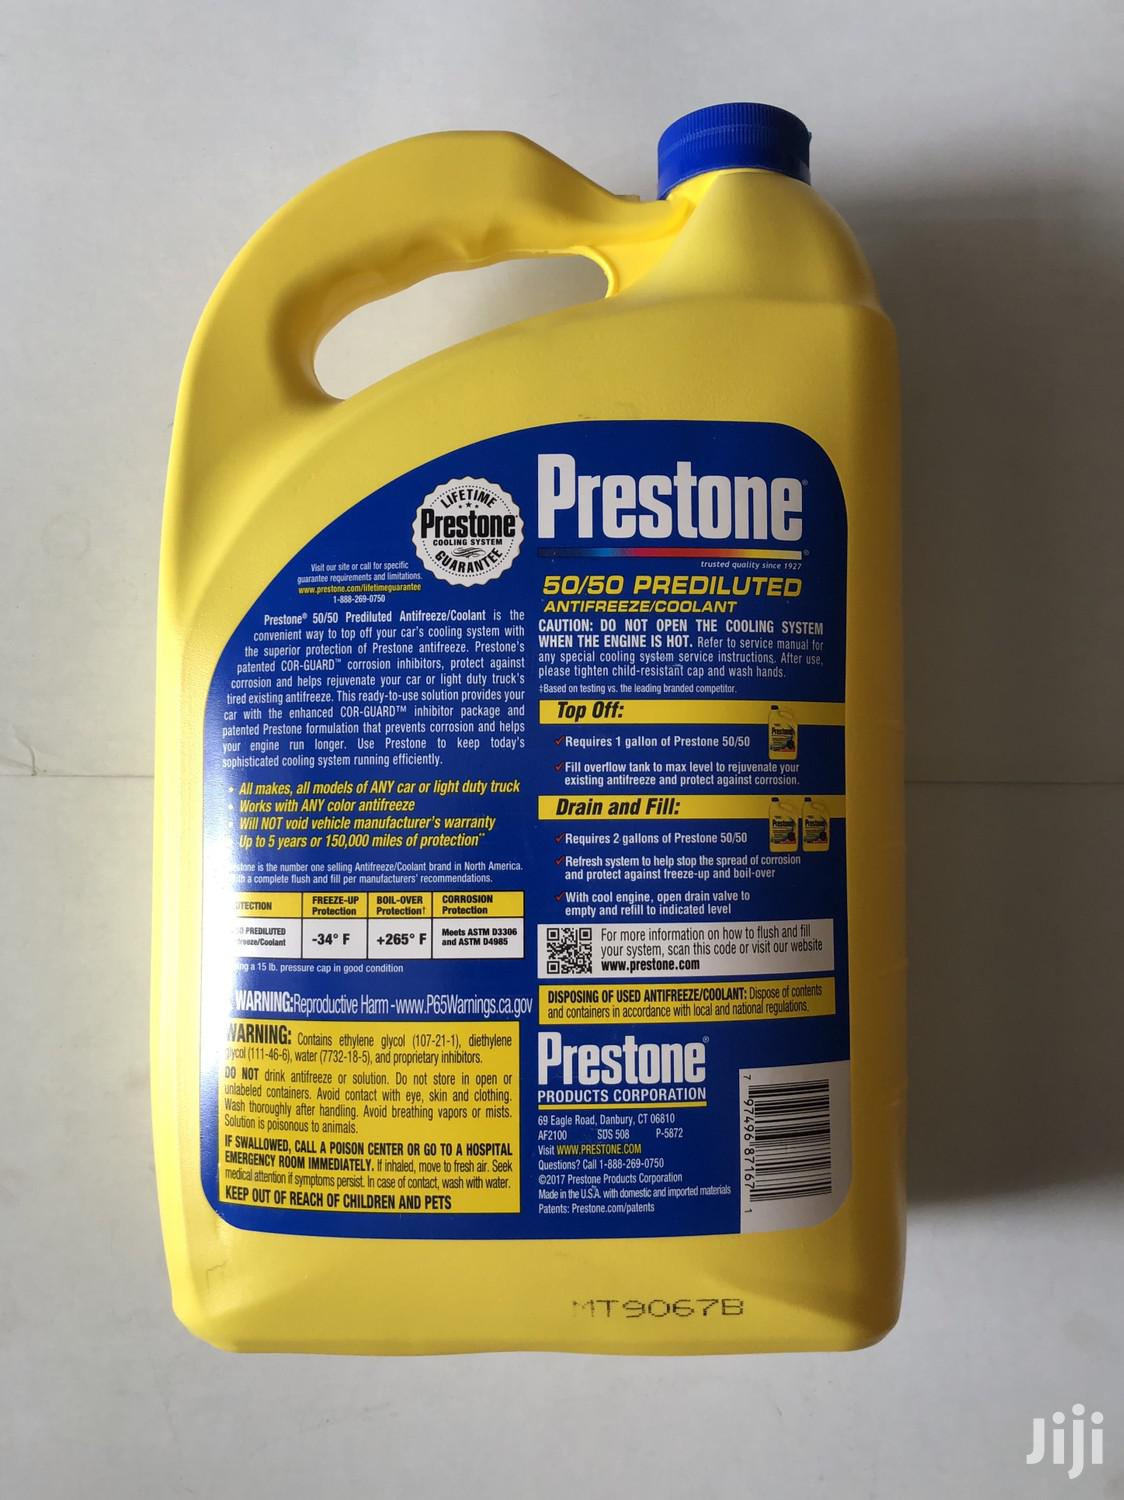 Prestone Coolant Antifreeze | Vehicle Parts & Accessories for sale in East Legon, Greater Accra, Ghana